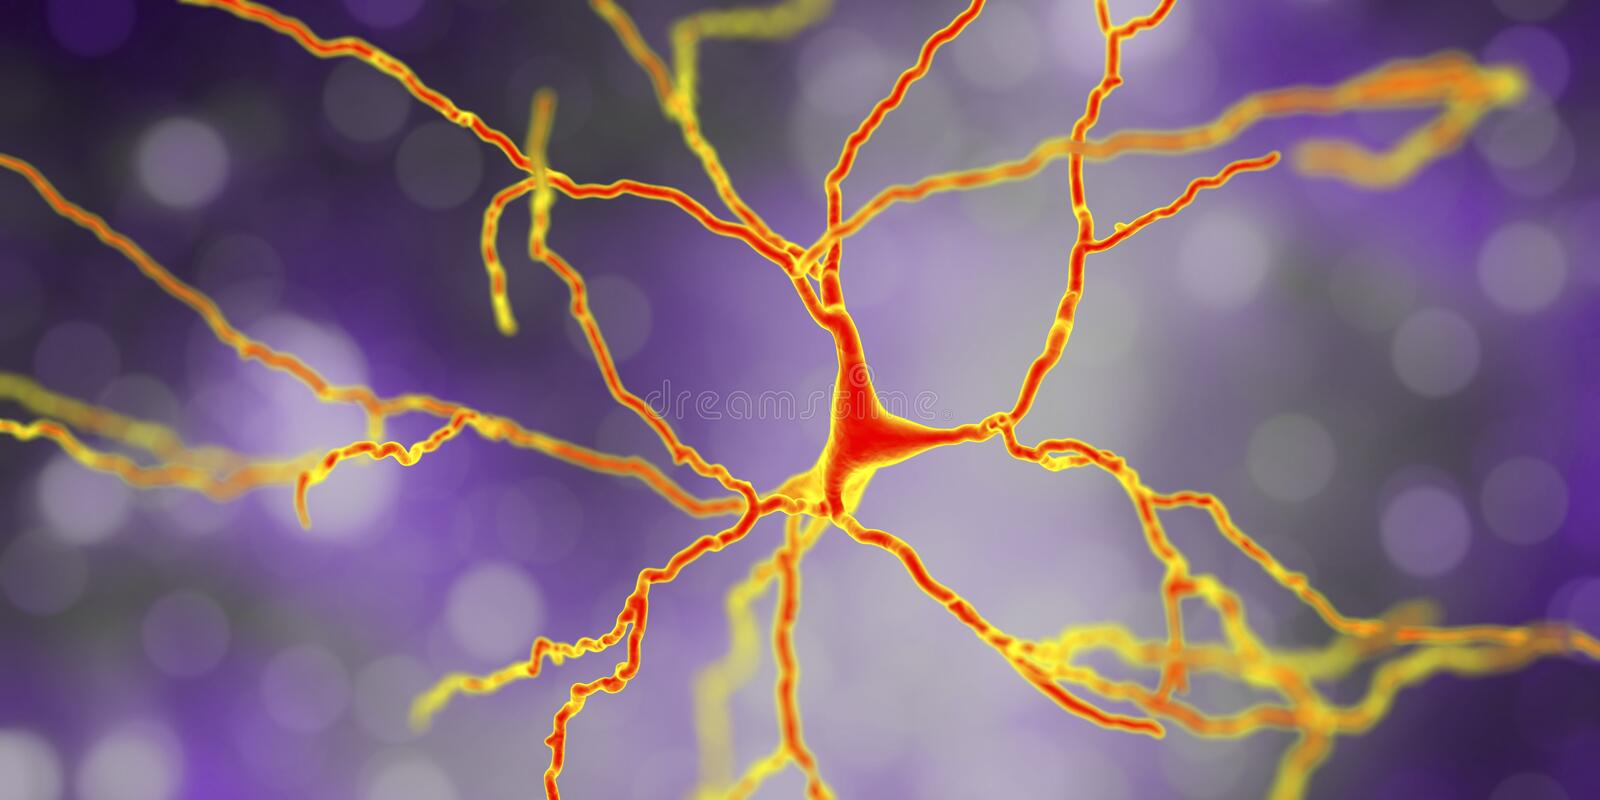 Neurone dopaminergique, reconstruction d'ordinateur illustration libre de droits